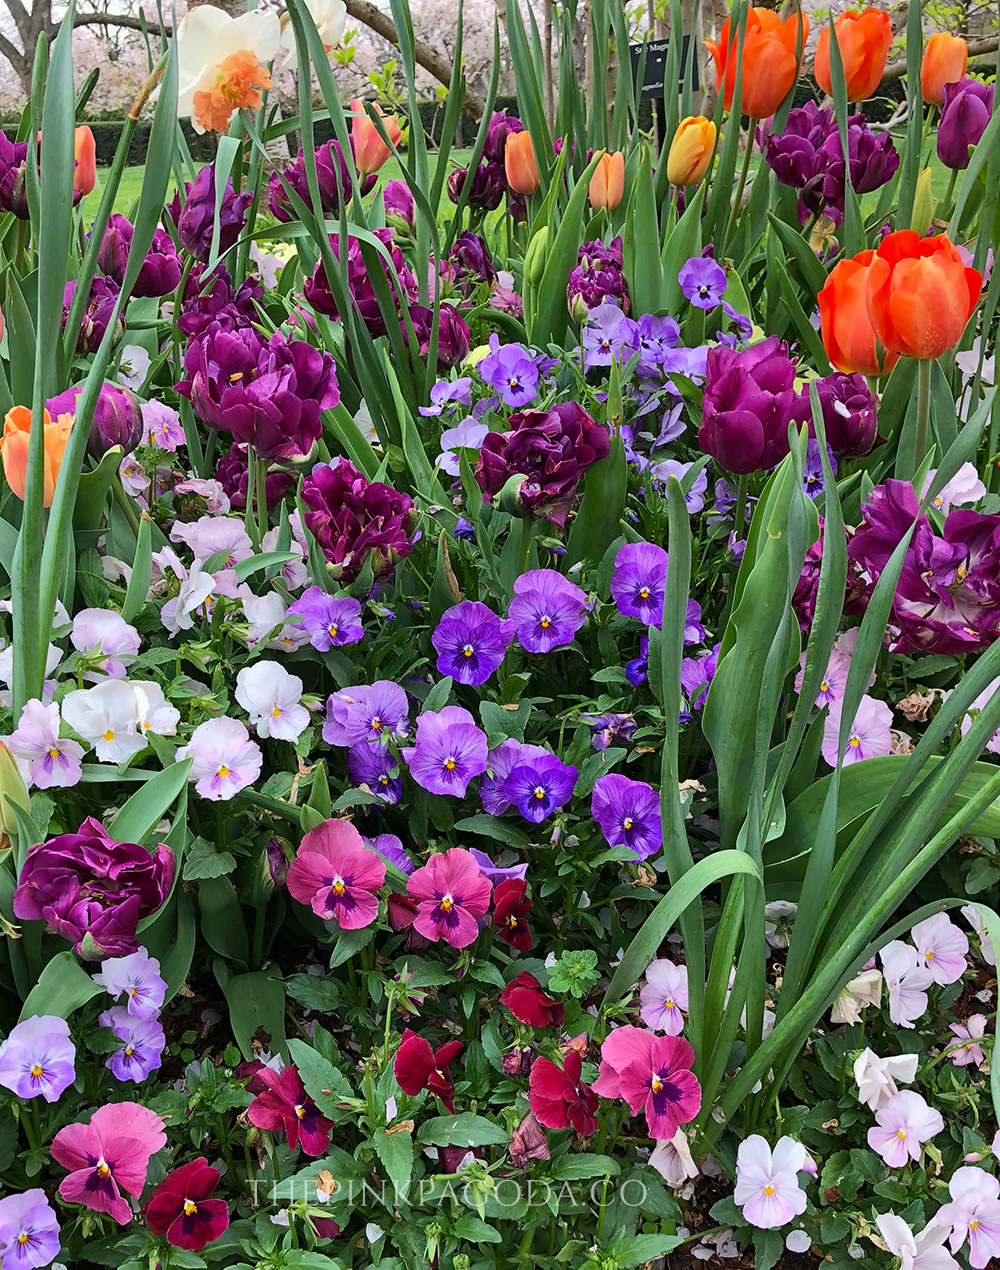 Pansies everywhere at The Dallas Arboretum and Botanical Garden.